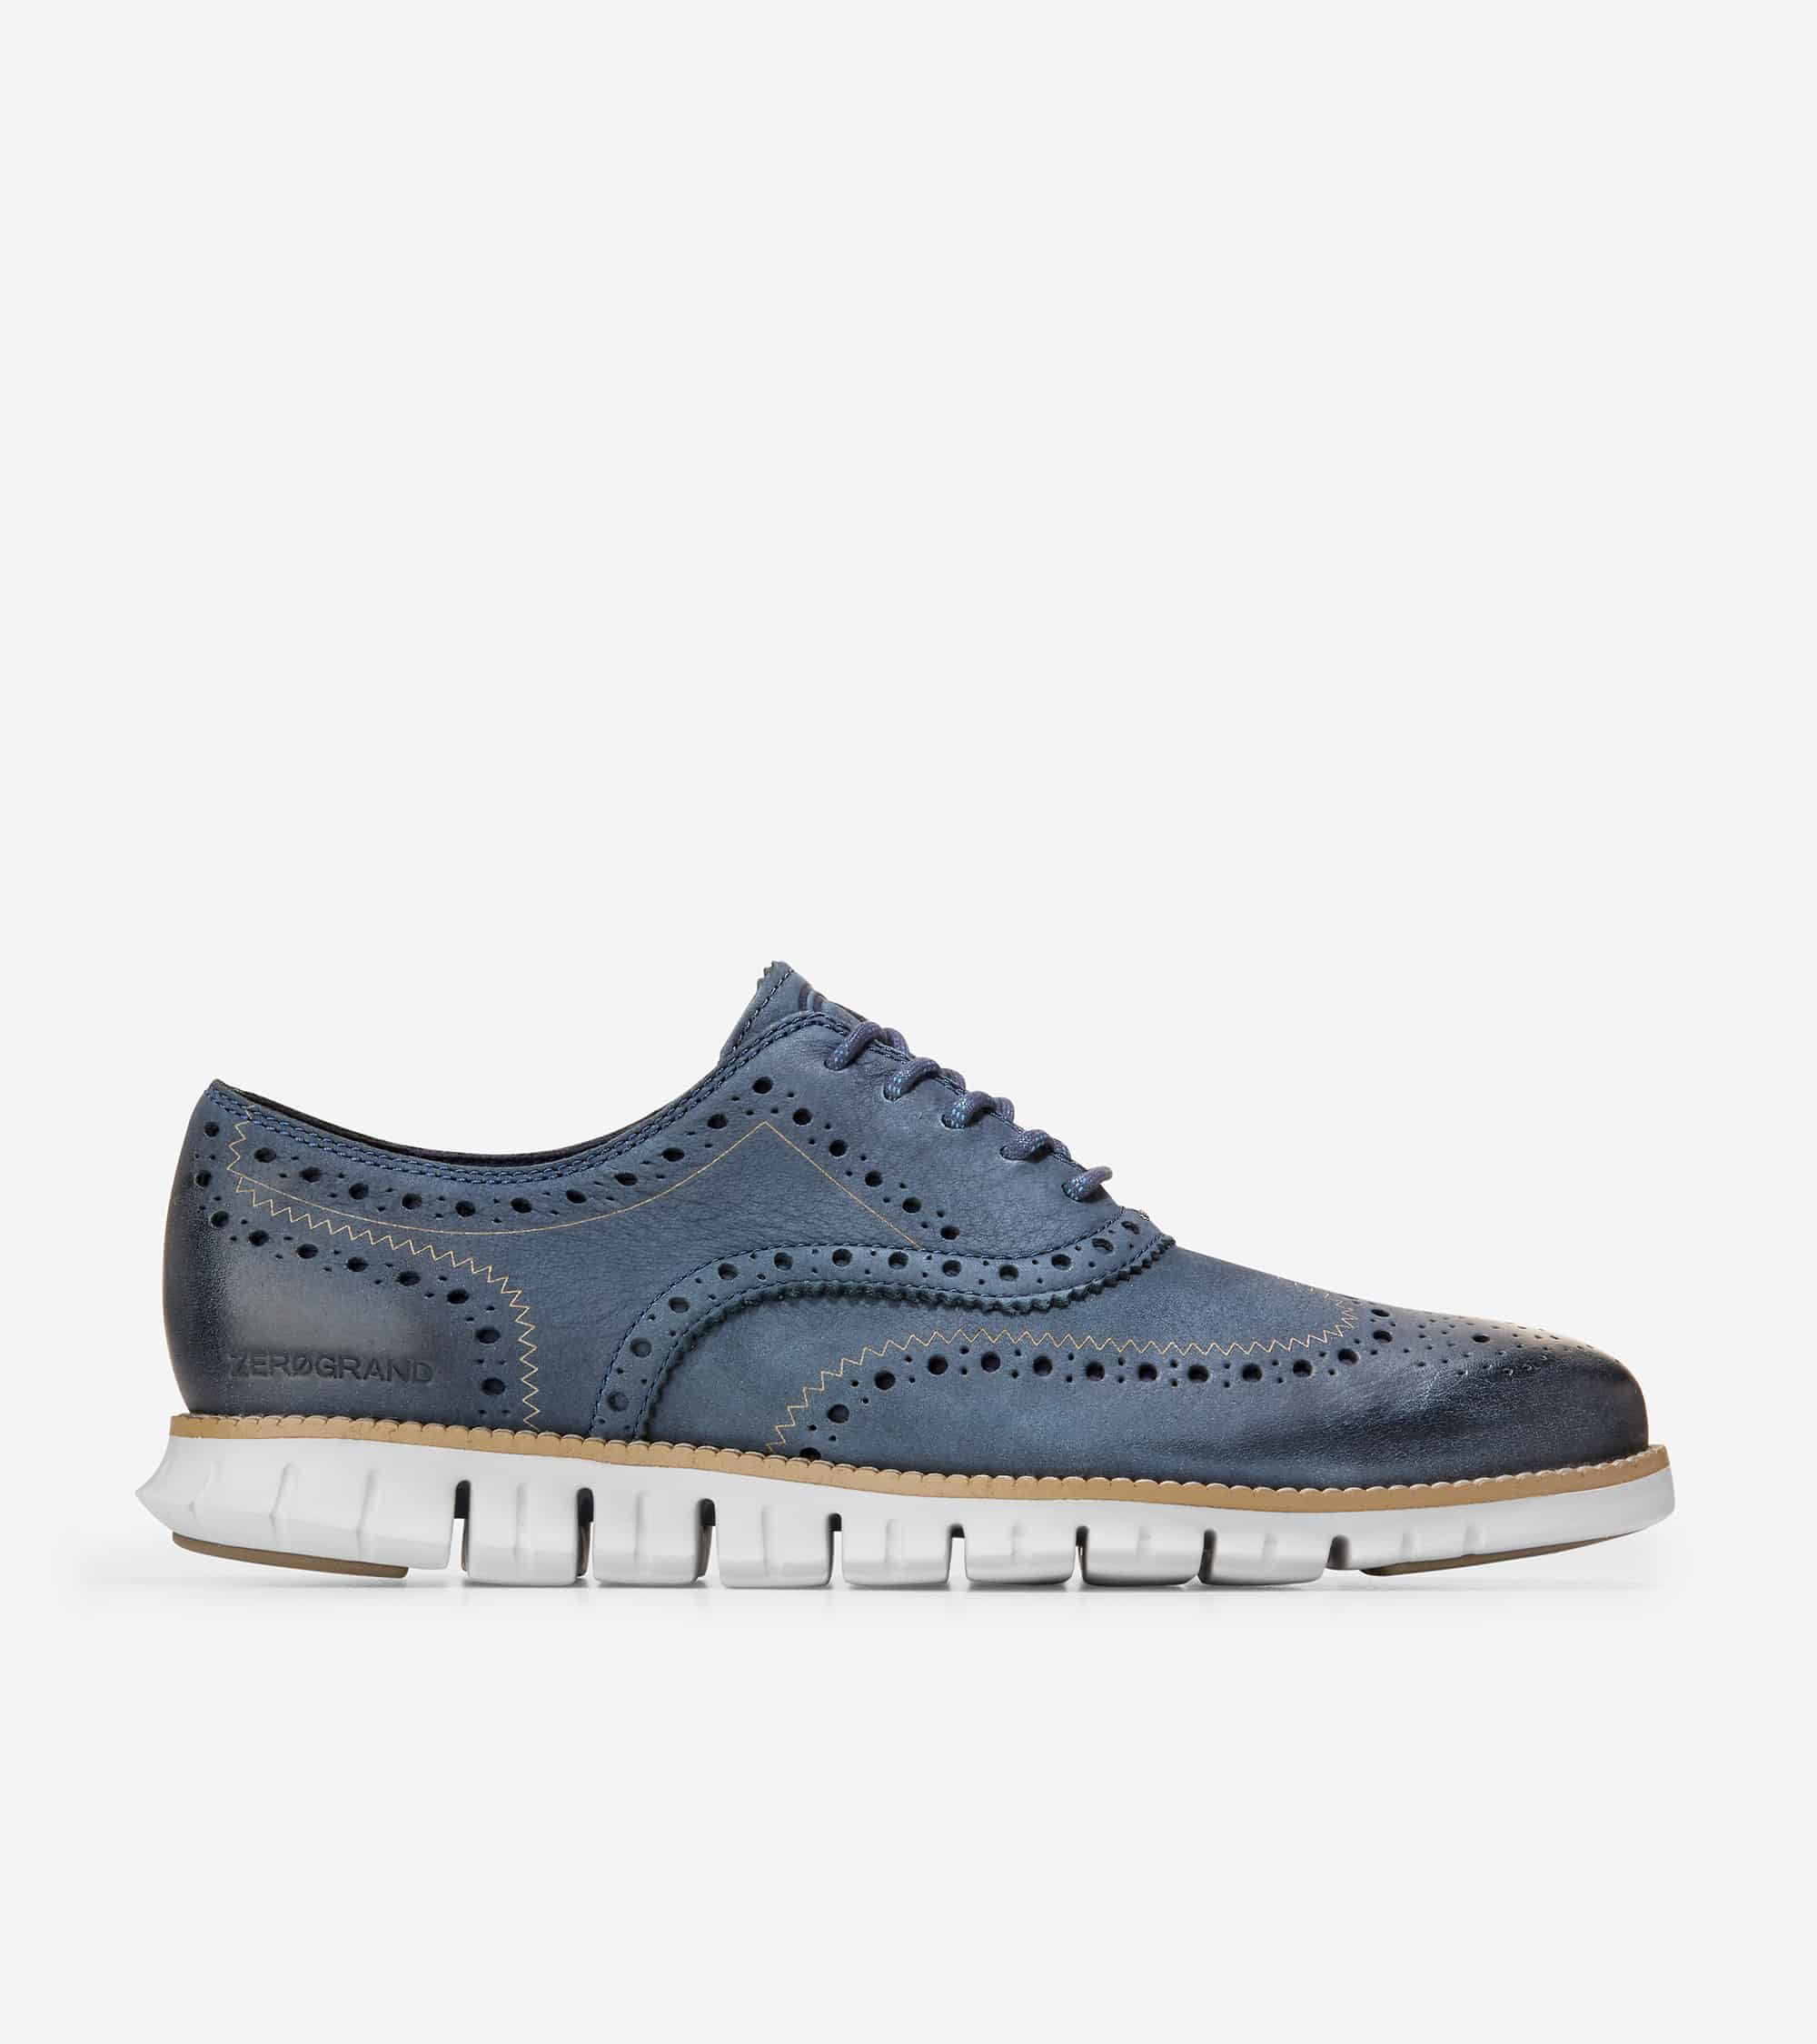 Cole Haan ZERØGRAND Wingtip Oxford Ombre Blue Nubuck/Cool Gray